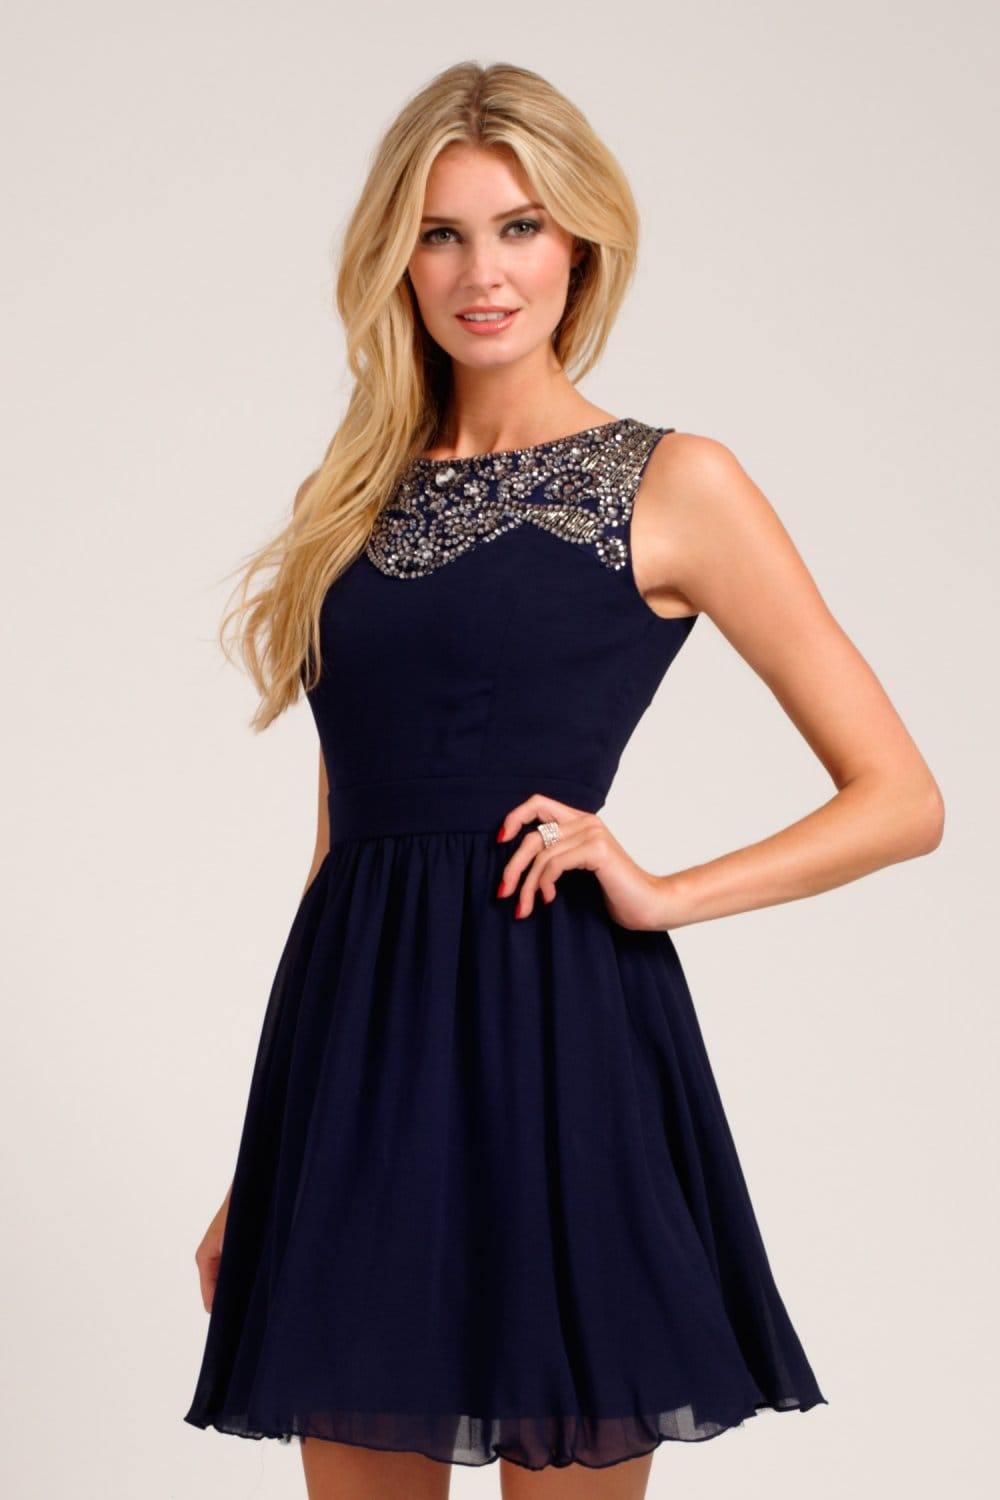 Navy blue is one of the classiest and most timeless colors ever. A navy blue dress, whether short or long, suits every body type. Accessorize it with funky jewelry, attention-grabbing shoes, or other fashion accessories that fit your lifestyle to add an eye-catching sparkle to this elegant hue.